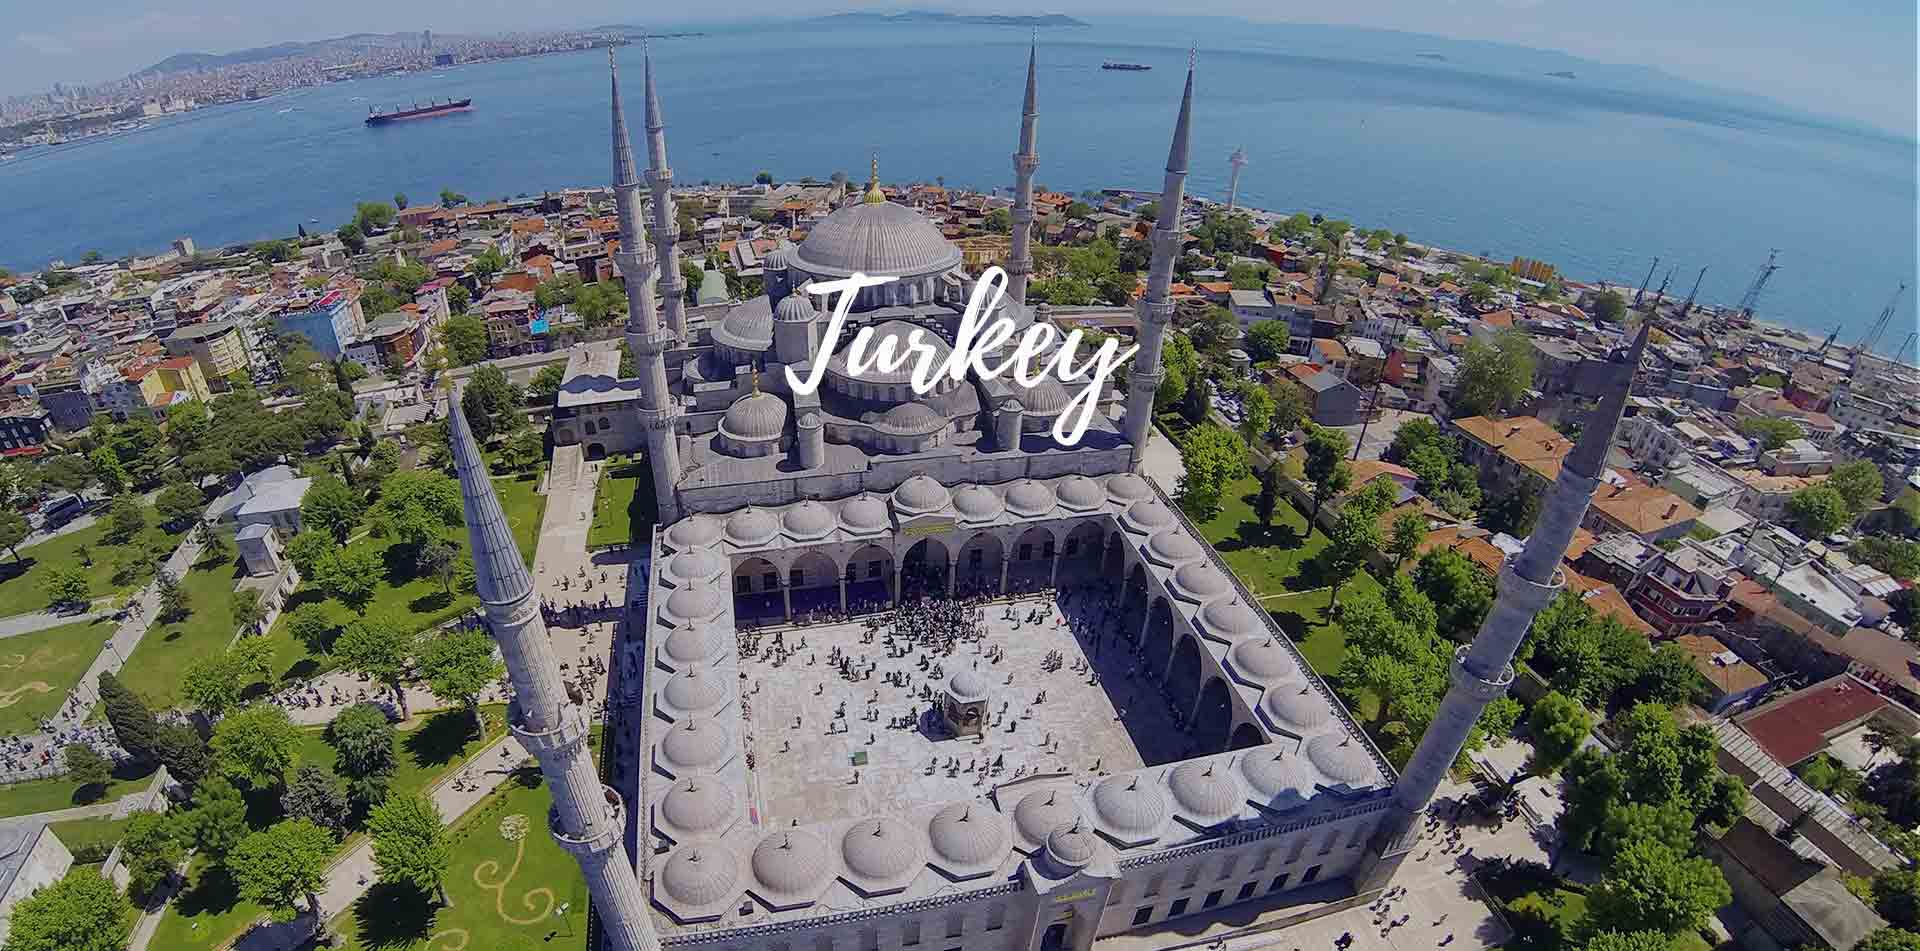 Turkey Istanbul aerial view of Hagia Sophia Museum and minarets - luxury vacation destinations